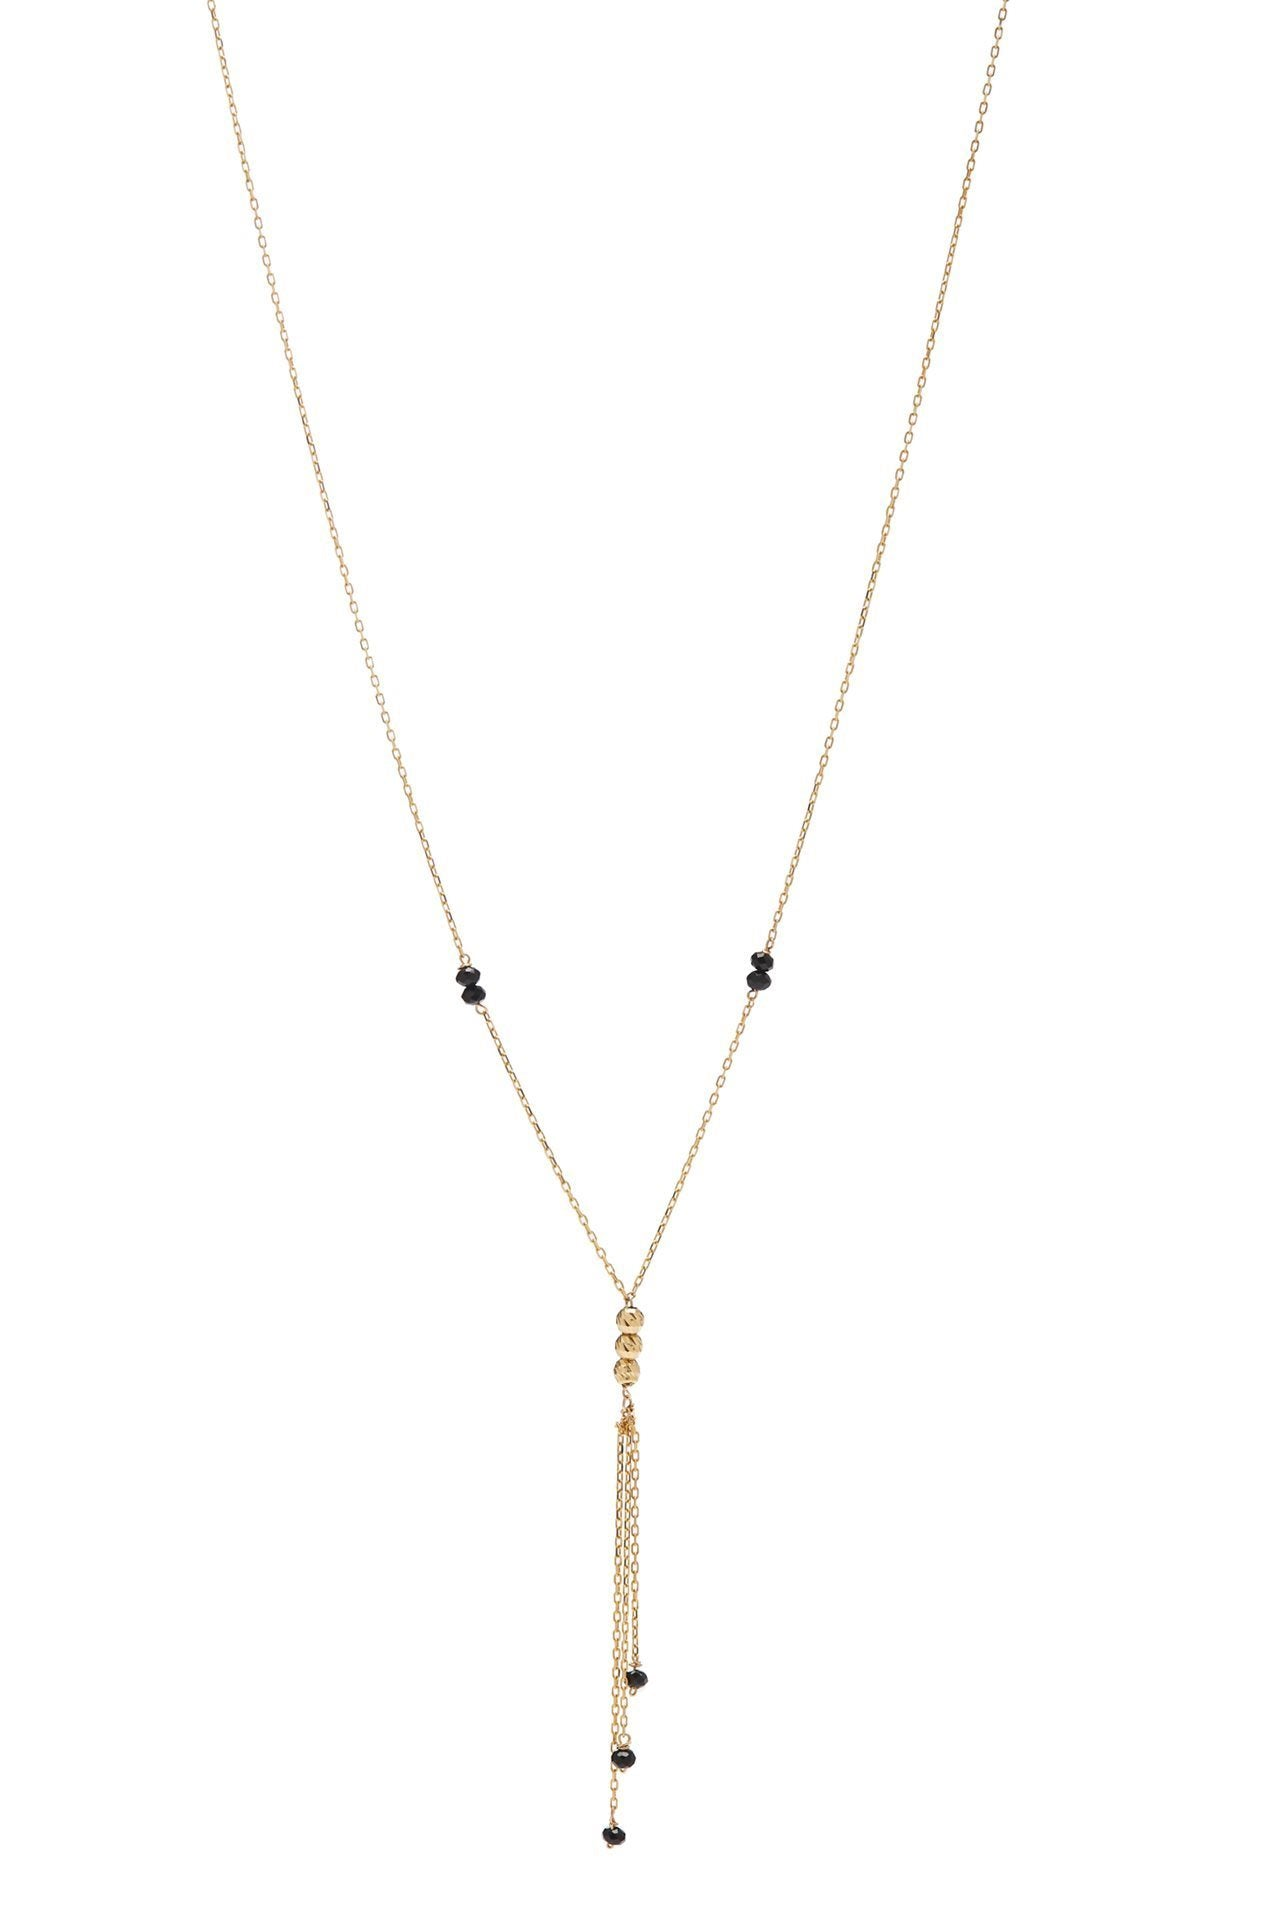 18K Necklace with Black Beads